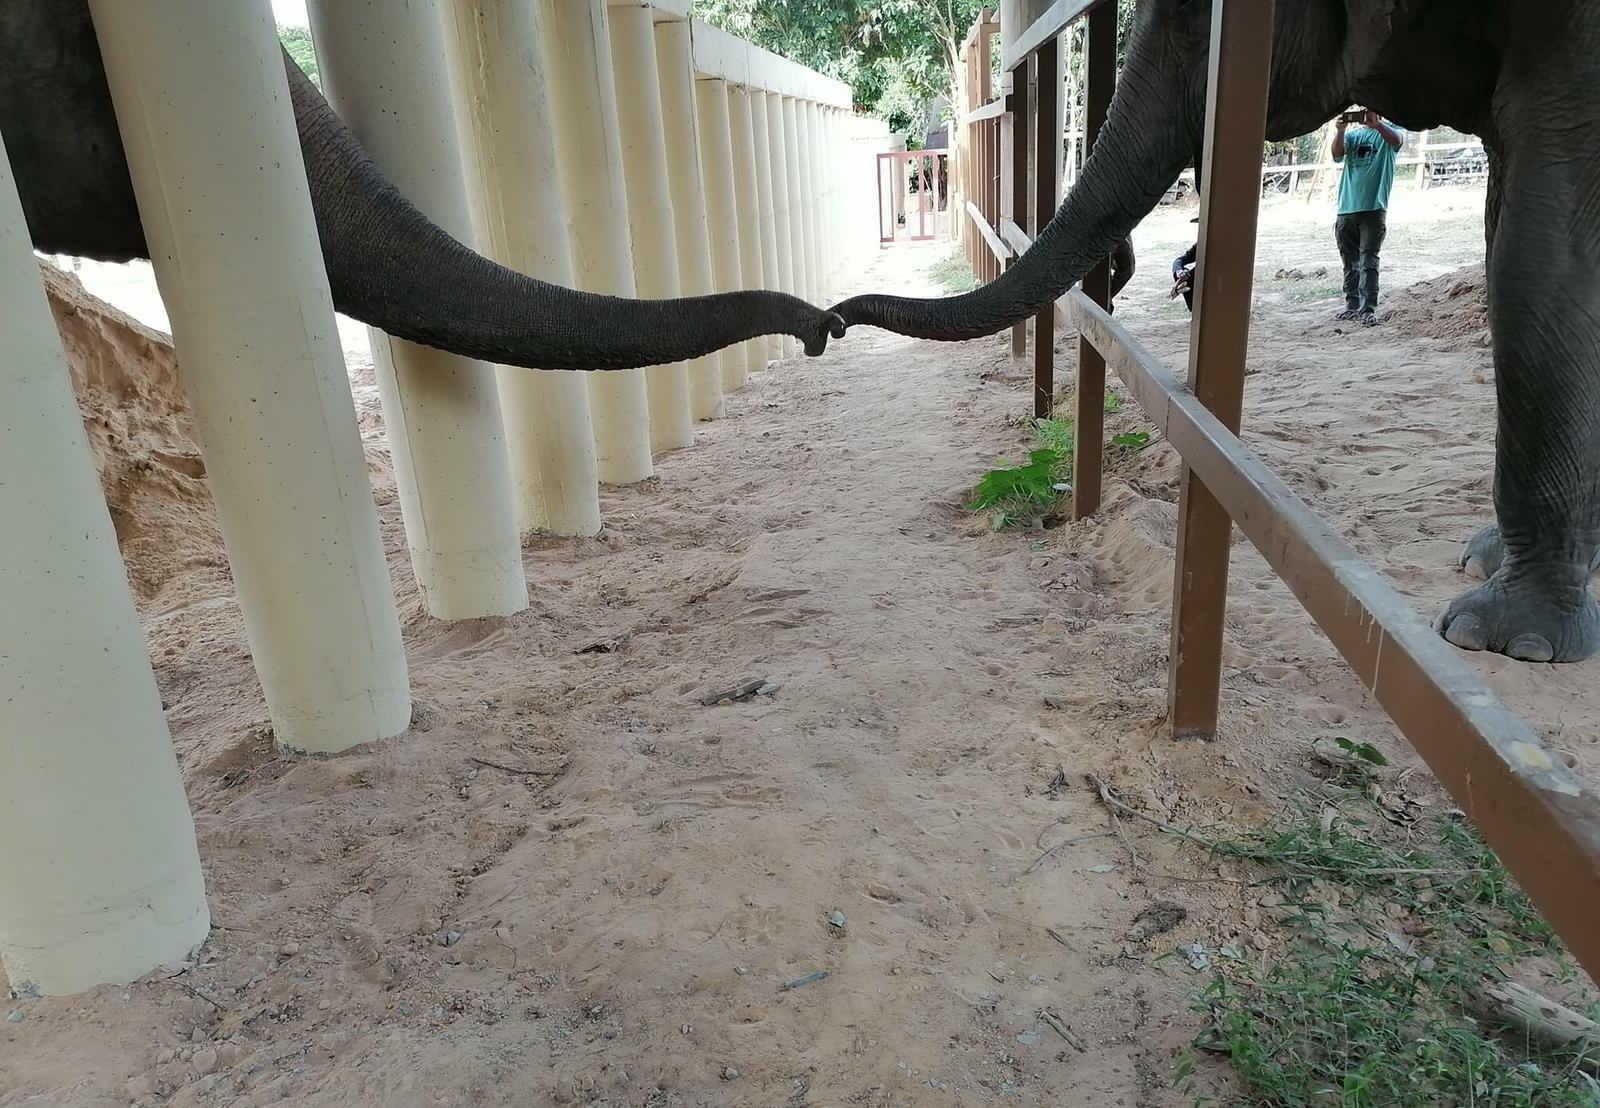 Kaavan interacts with another elephant